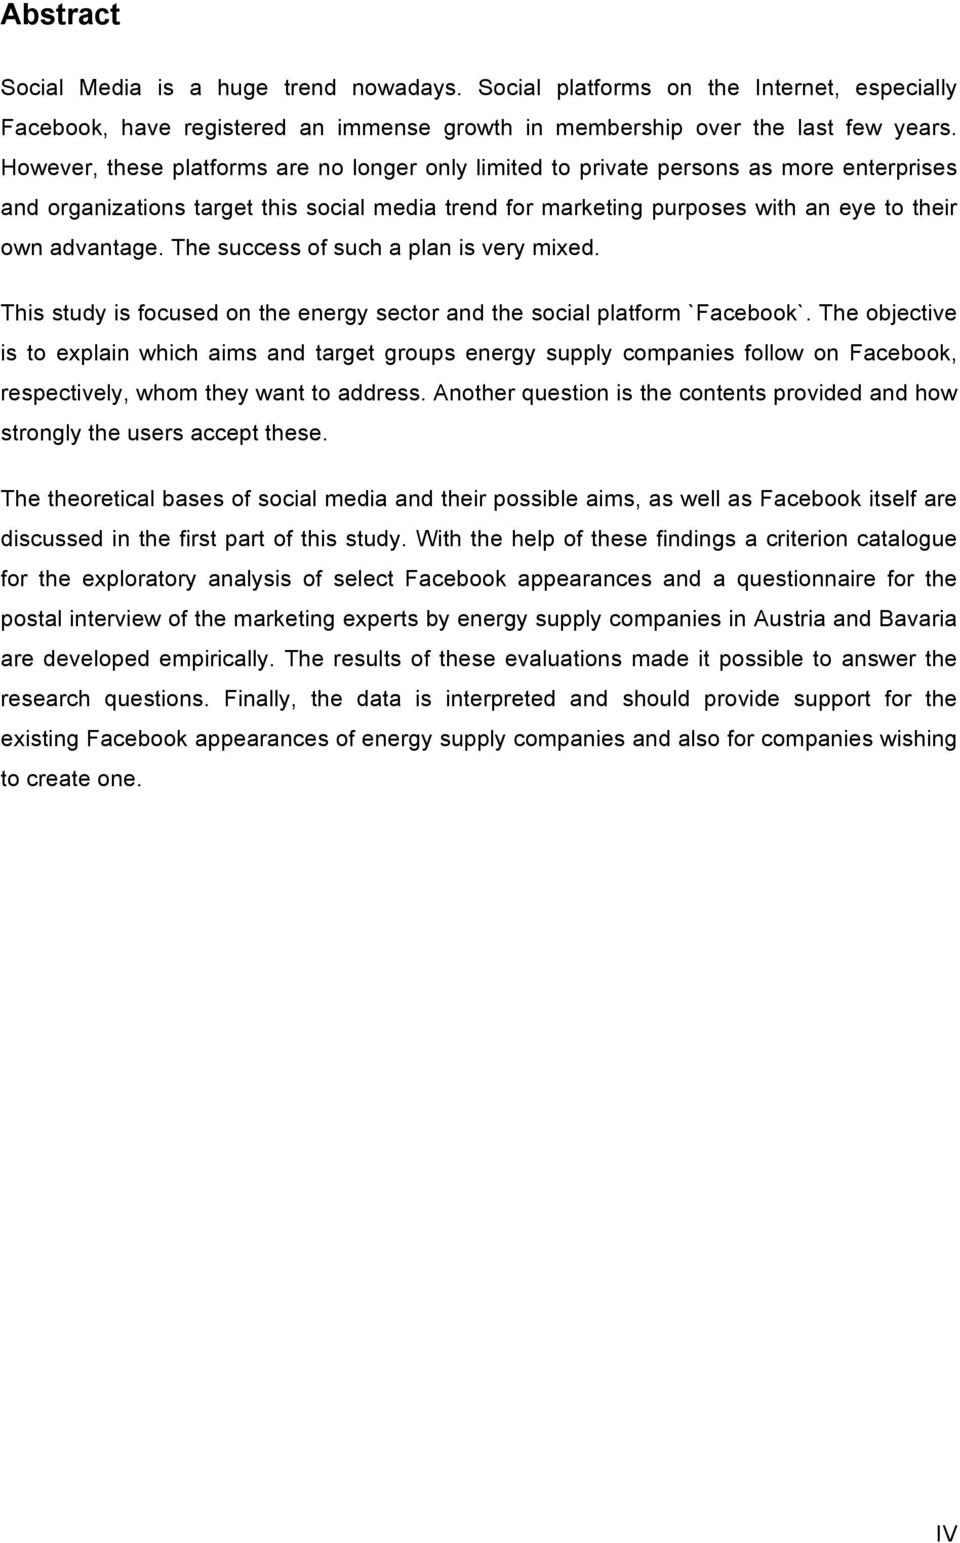 The success of such a plan is very mixed. This study is focused on the energy sector and the social platform `Facebook`.